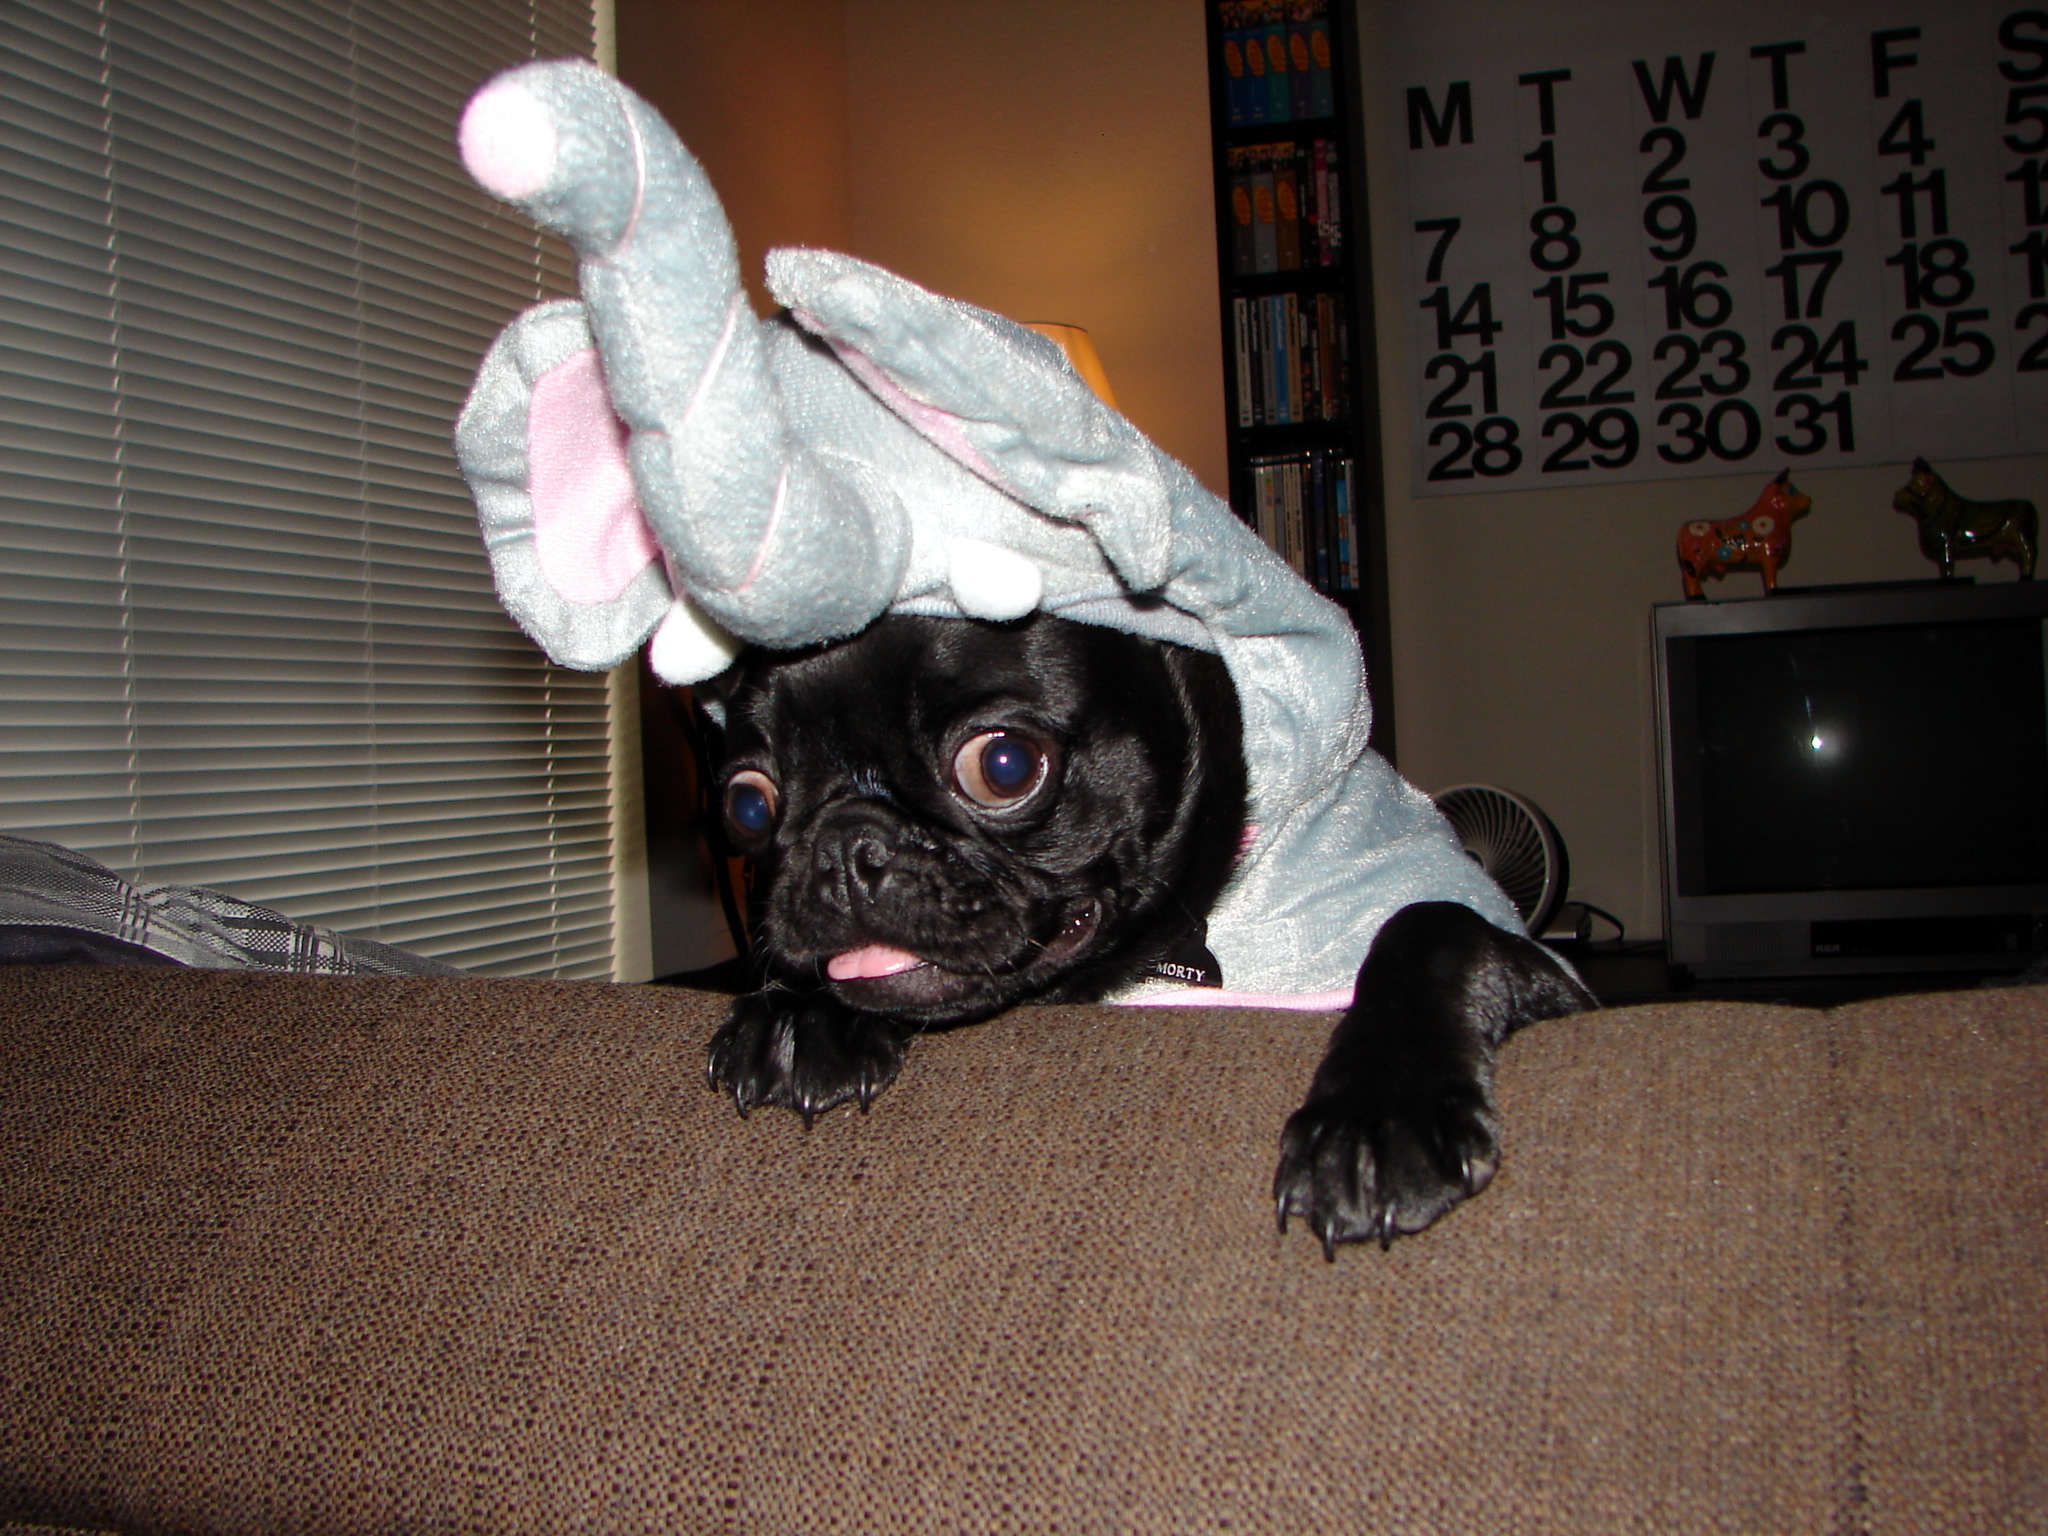 Fullsize Of Pug In Costume